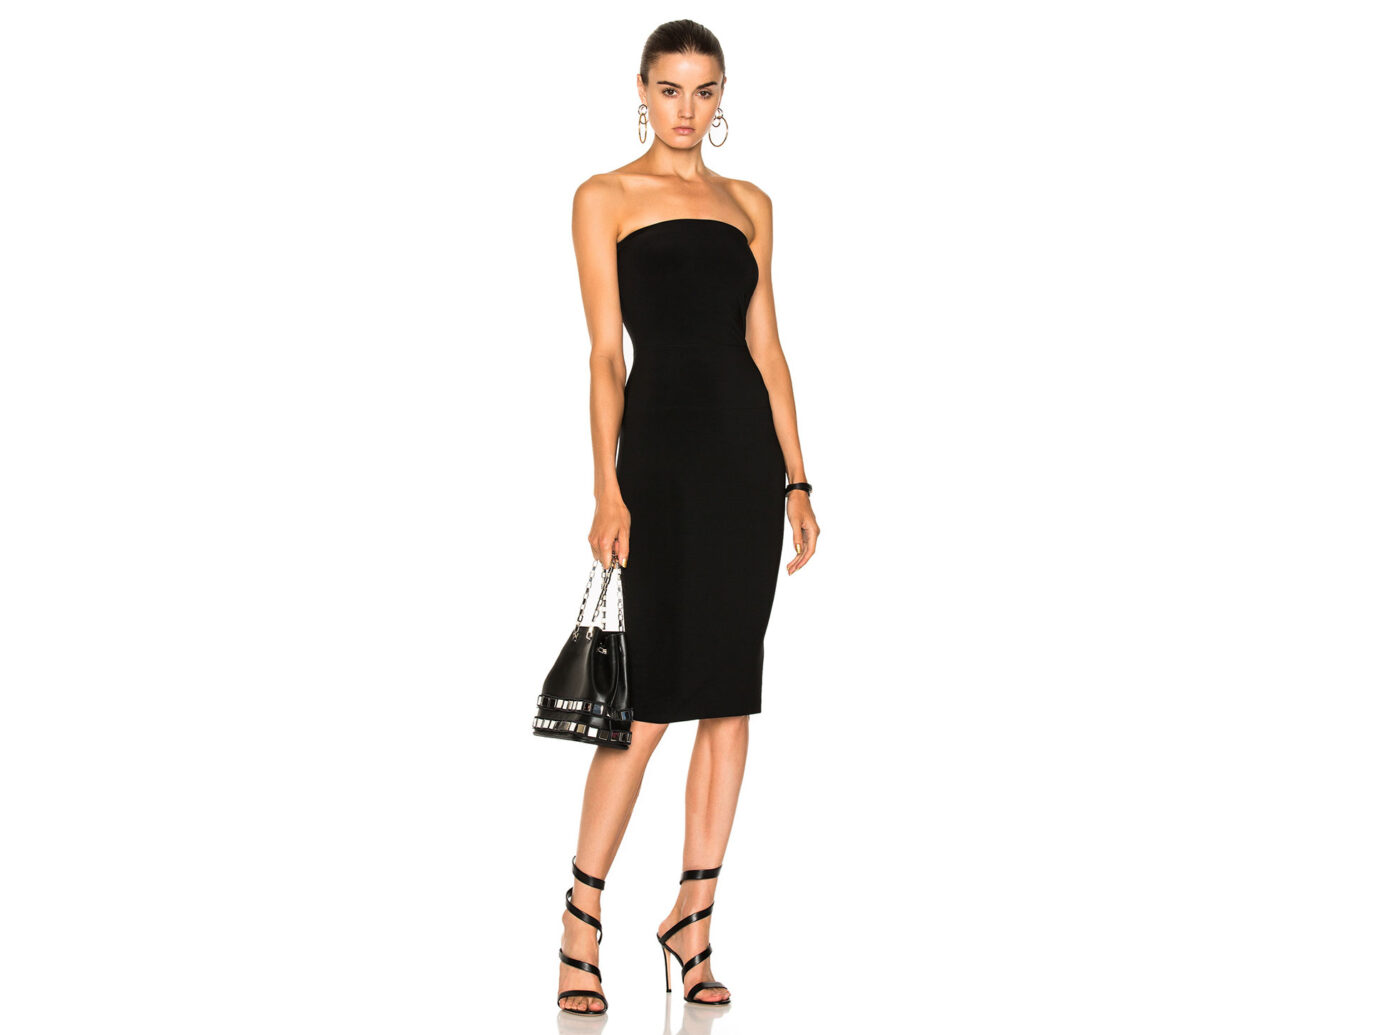 Norma Kamali Strapless Dress